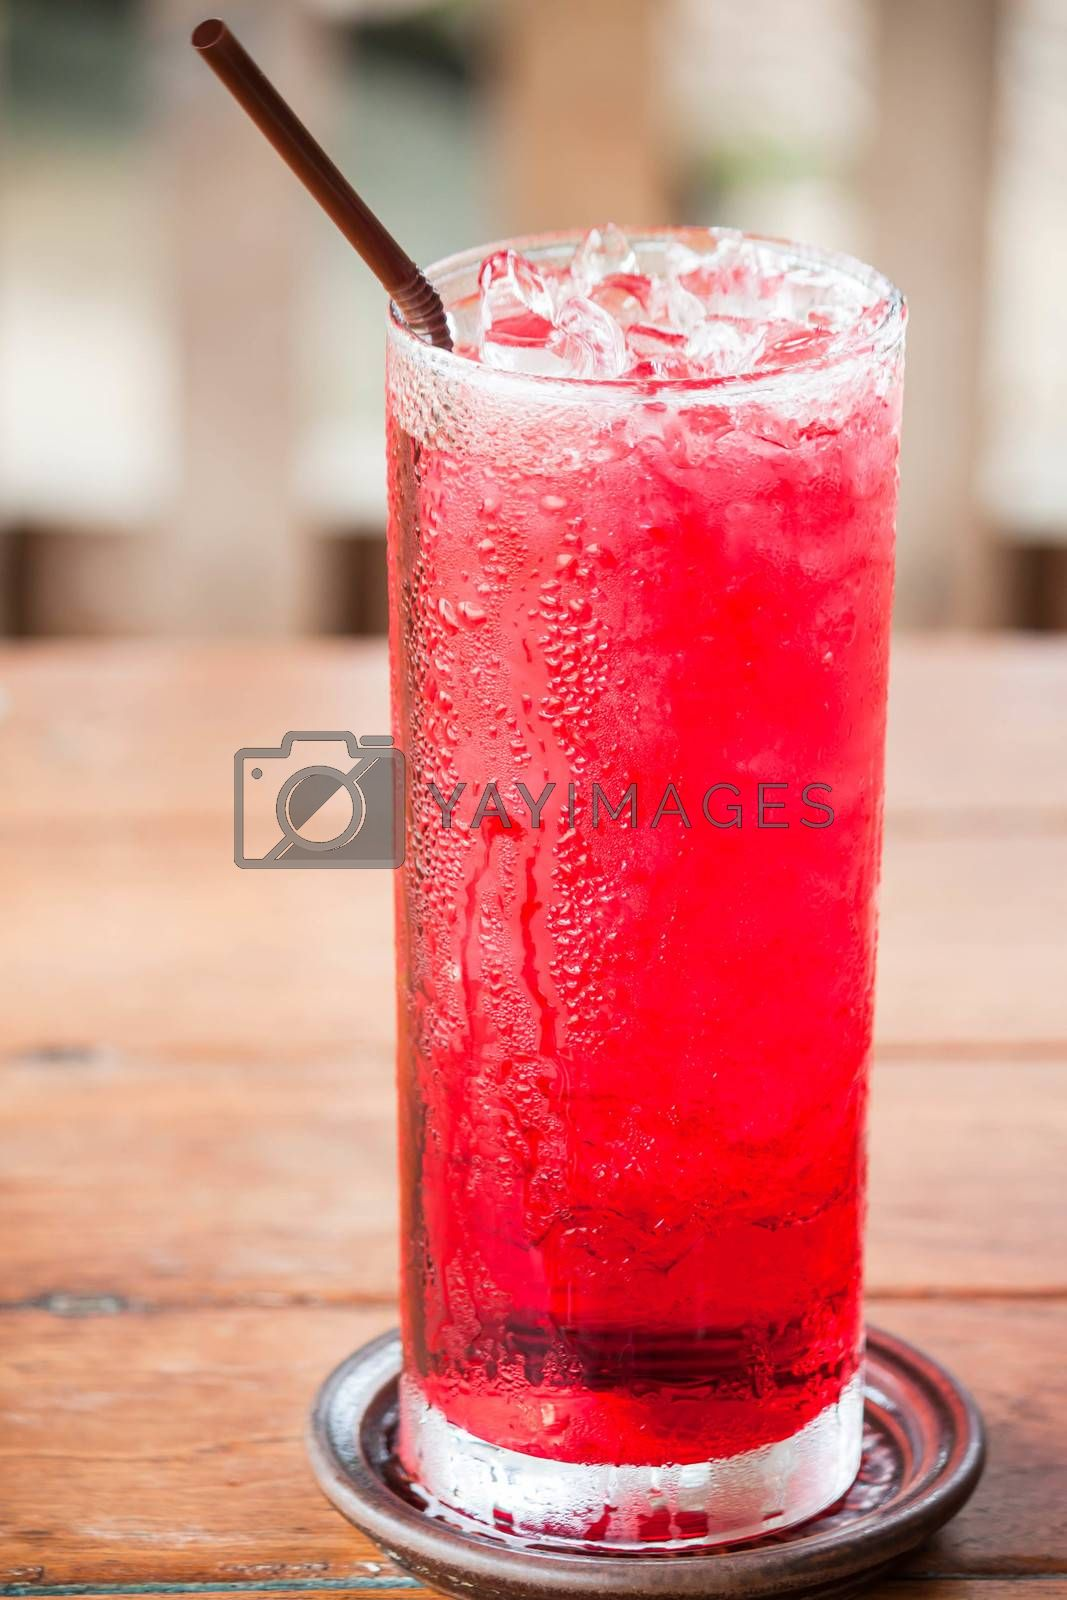 Glass of cold red drink with straw